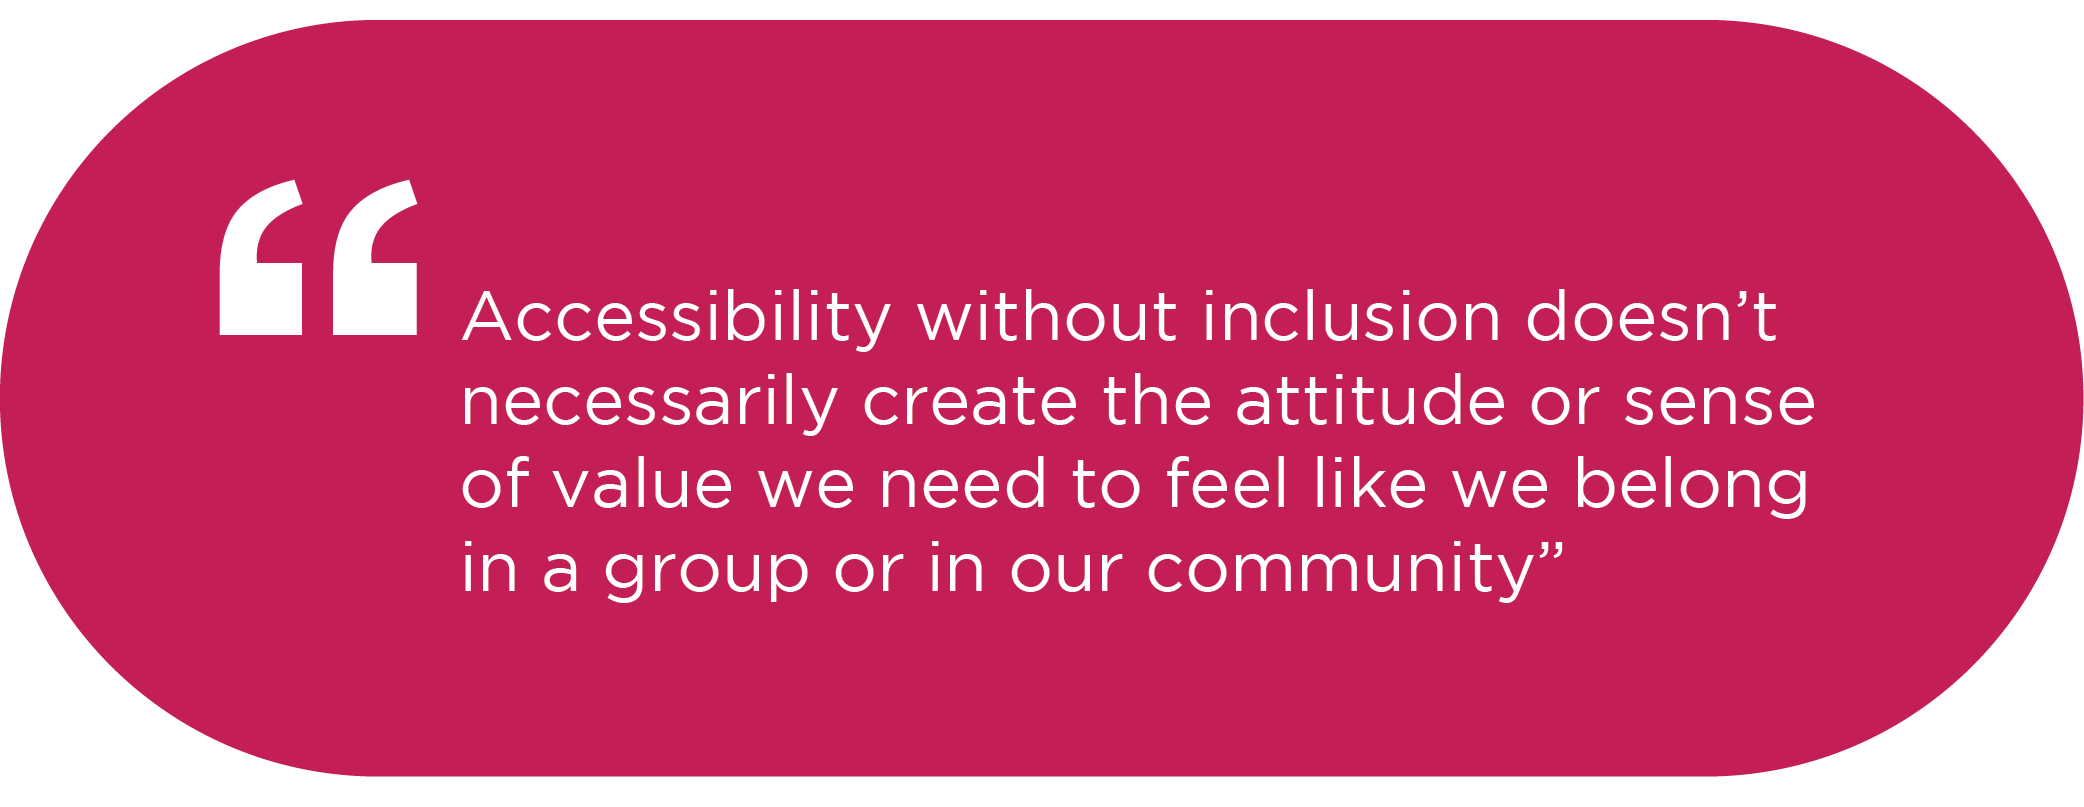 Quote from Ani: Accessibility without inclusion doesn't necessarily create the attitude or sense of value we need to feel like we belong in a group or in our community.